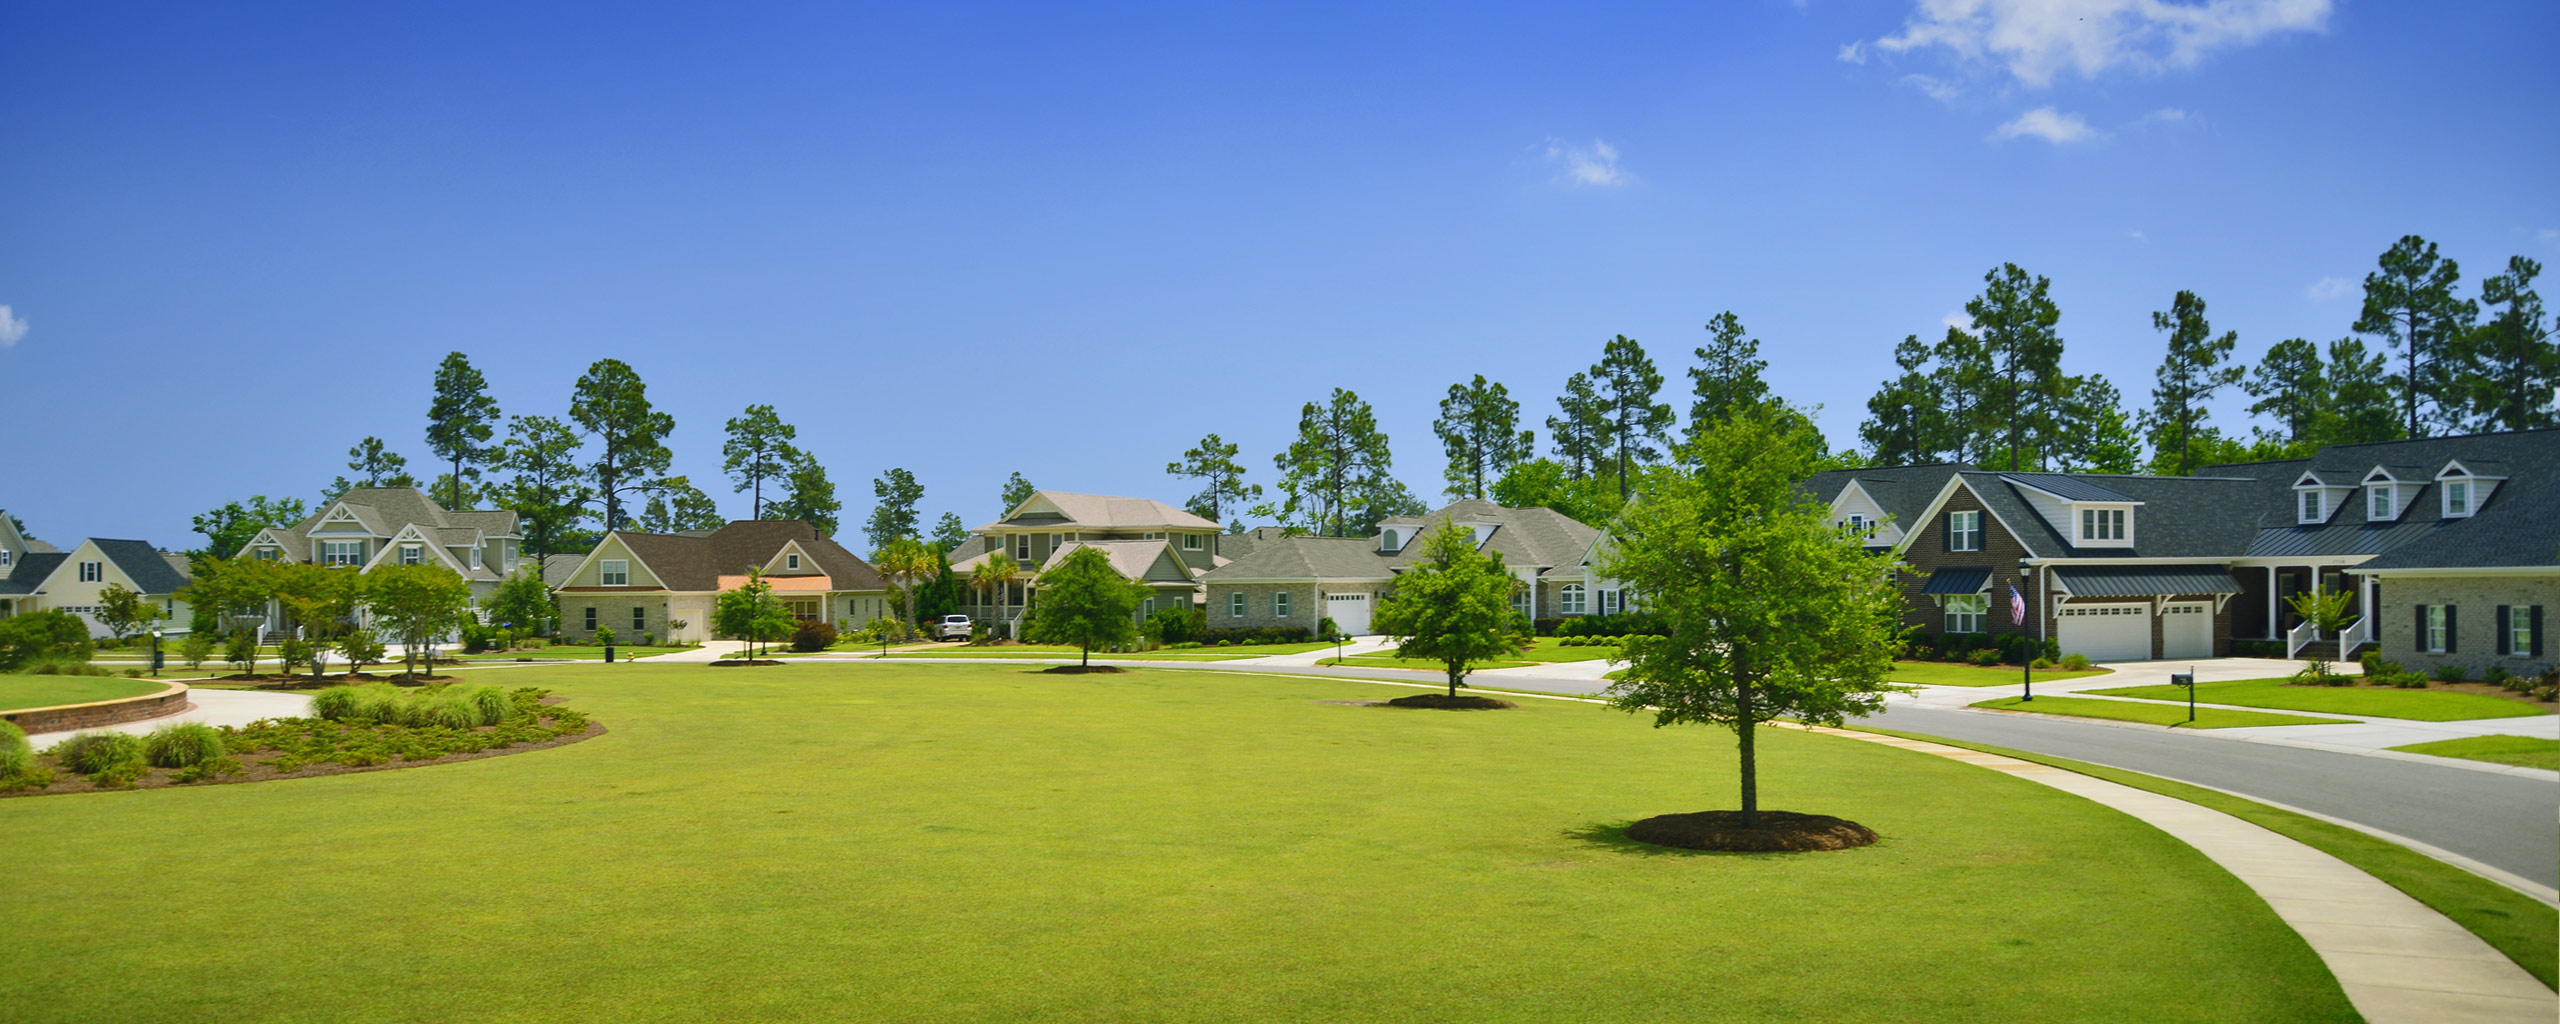 Green parks within the community of Brunswick Forest.